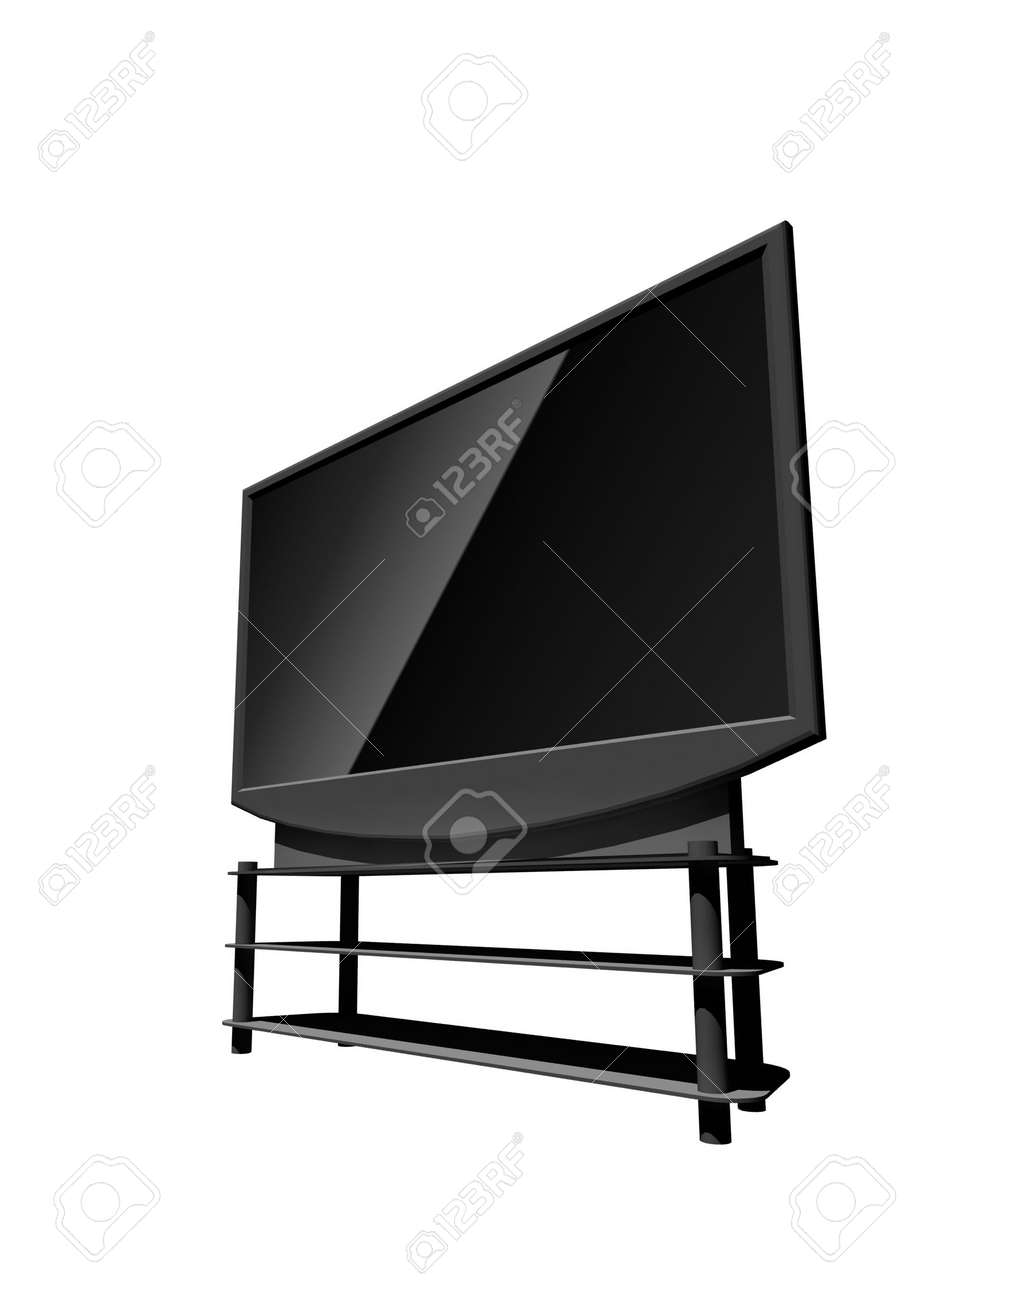 high definition television - isolated 3d illustration Stock Photo - 4534245